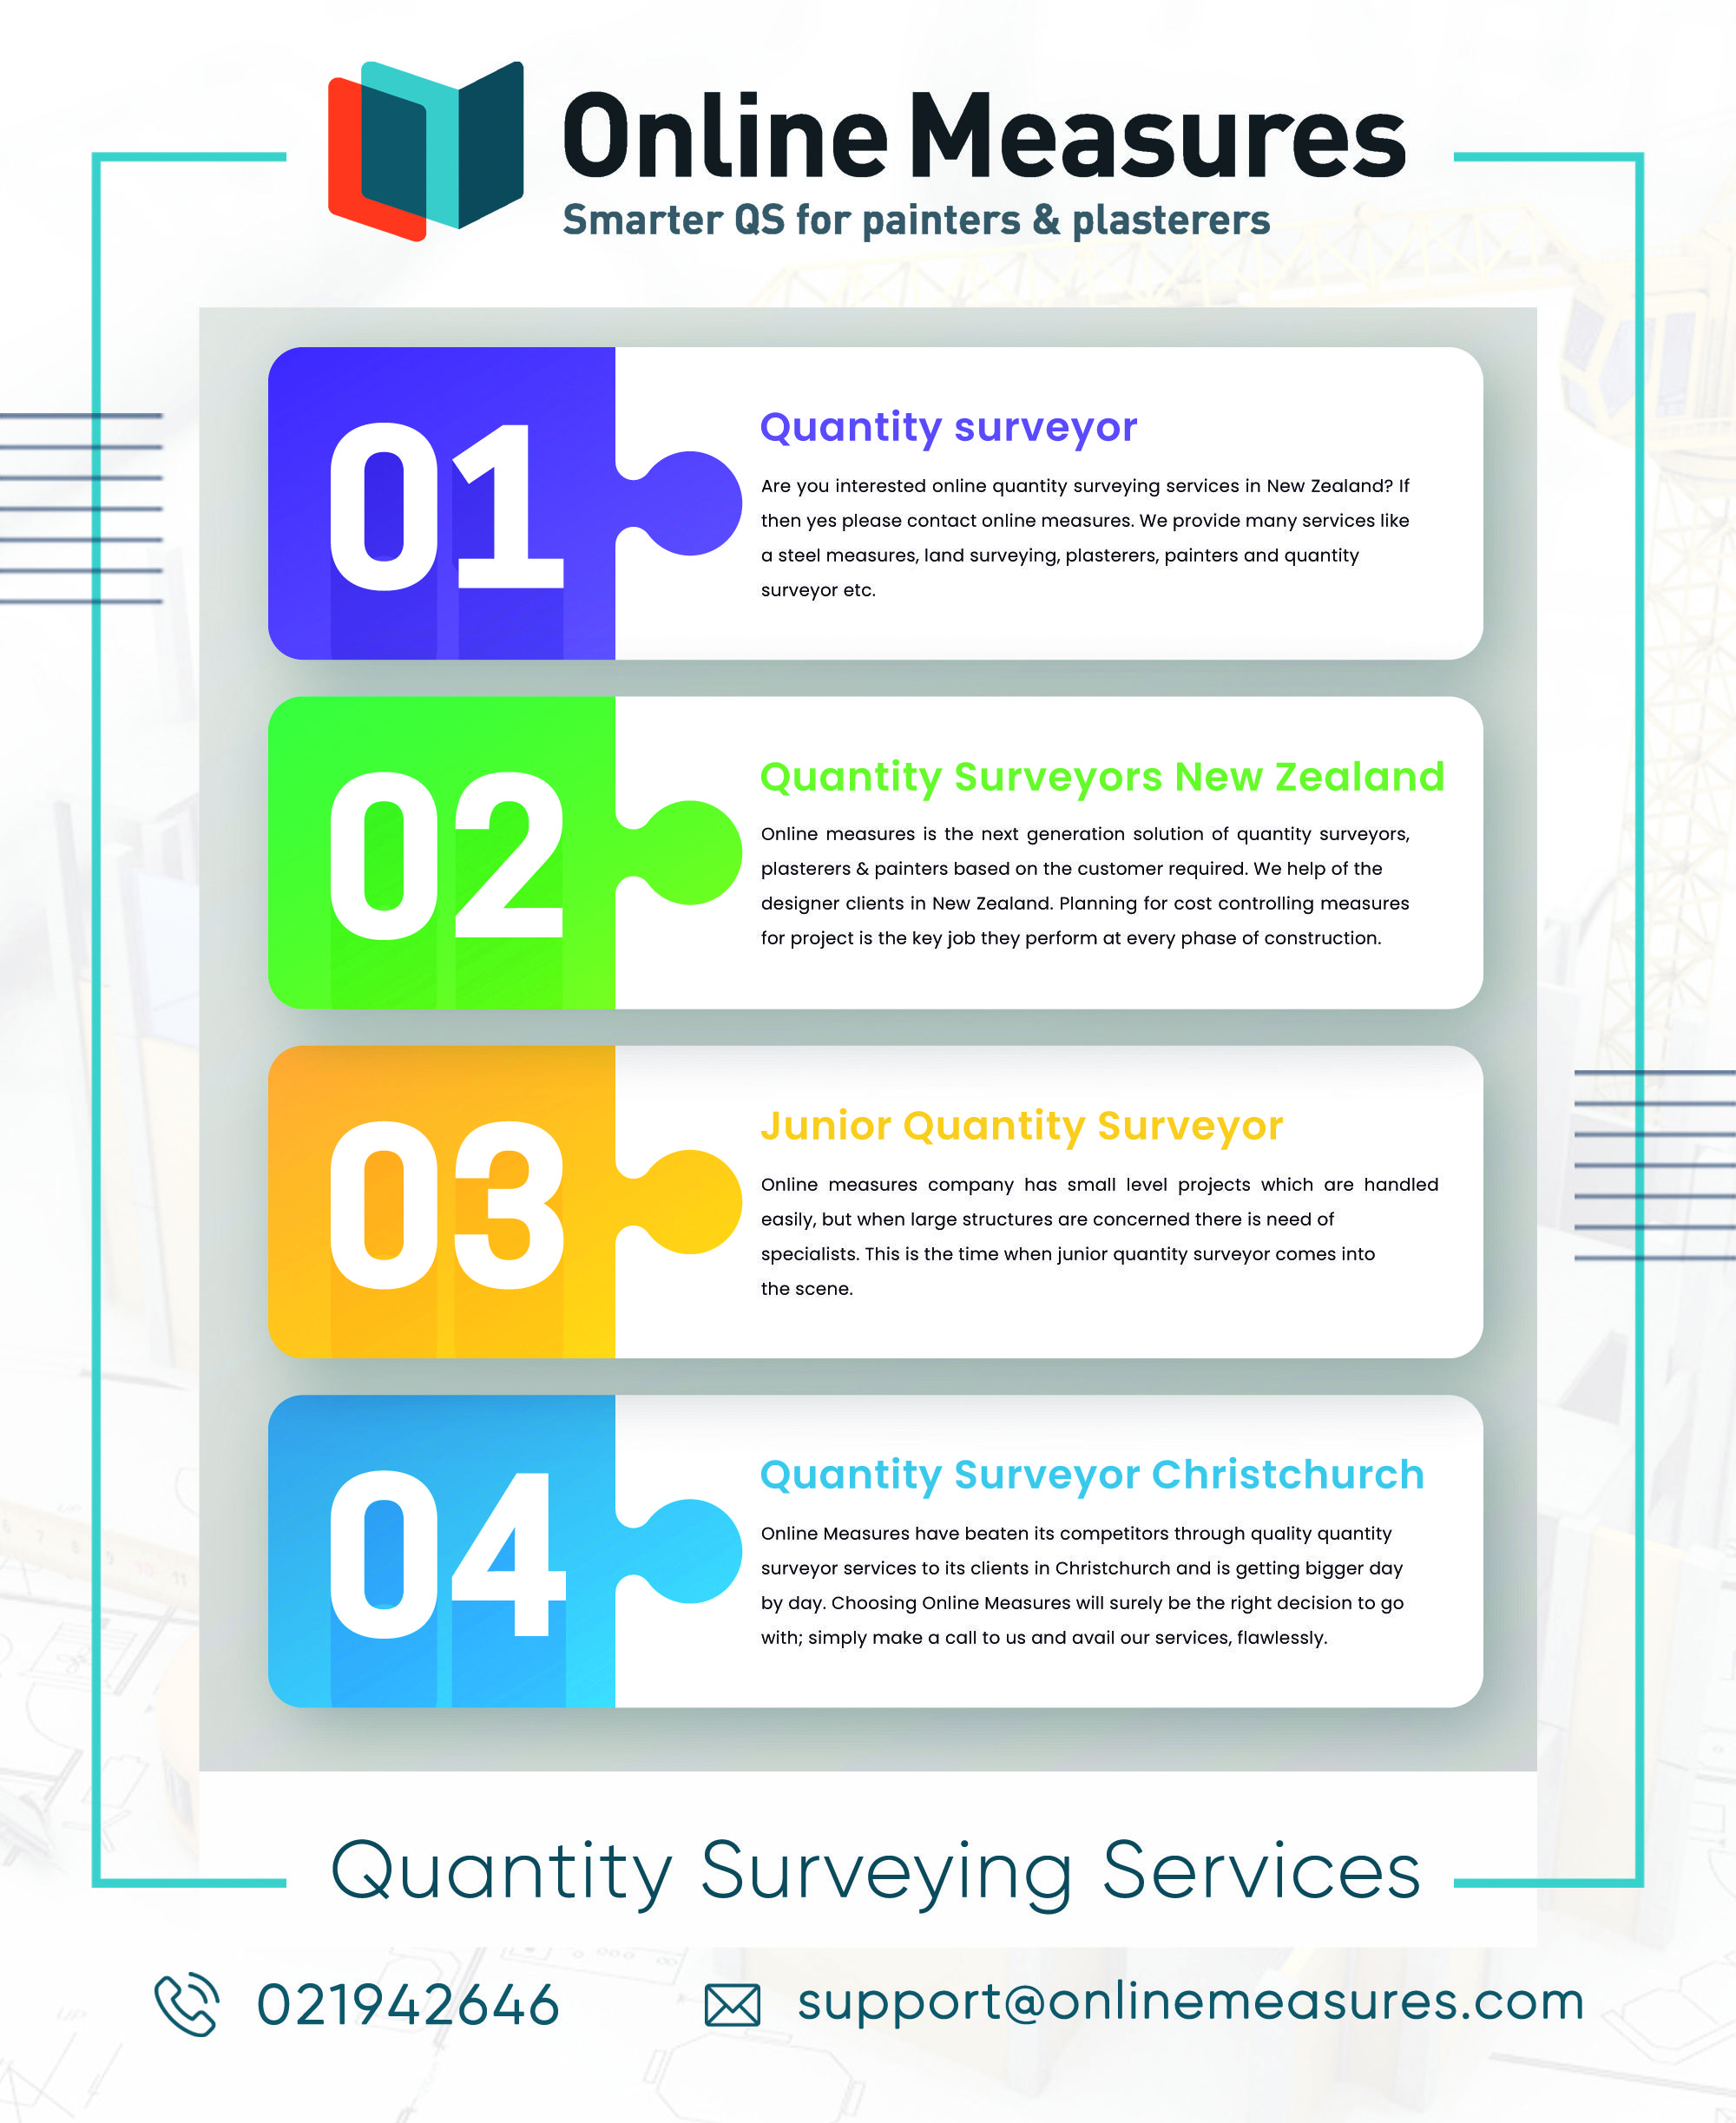 Online Measures Are The Professional Services Provider In